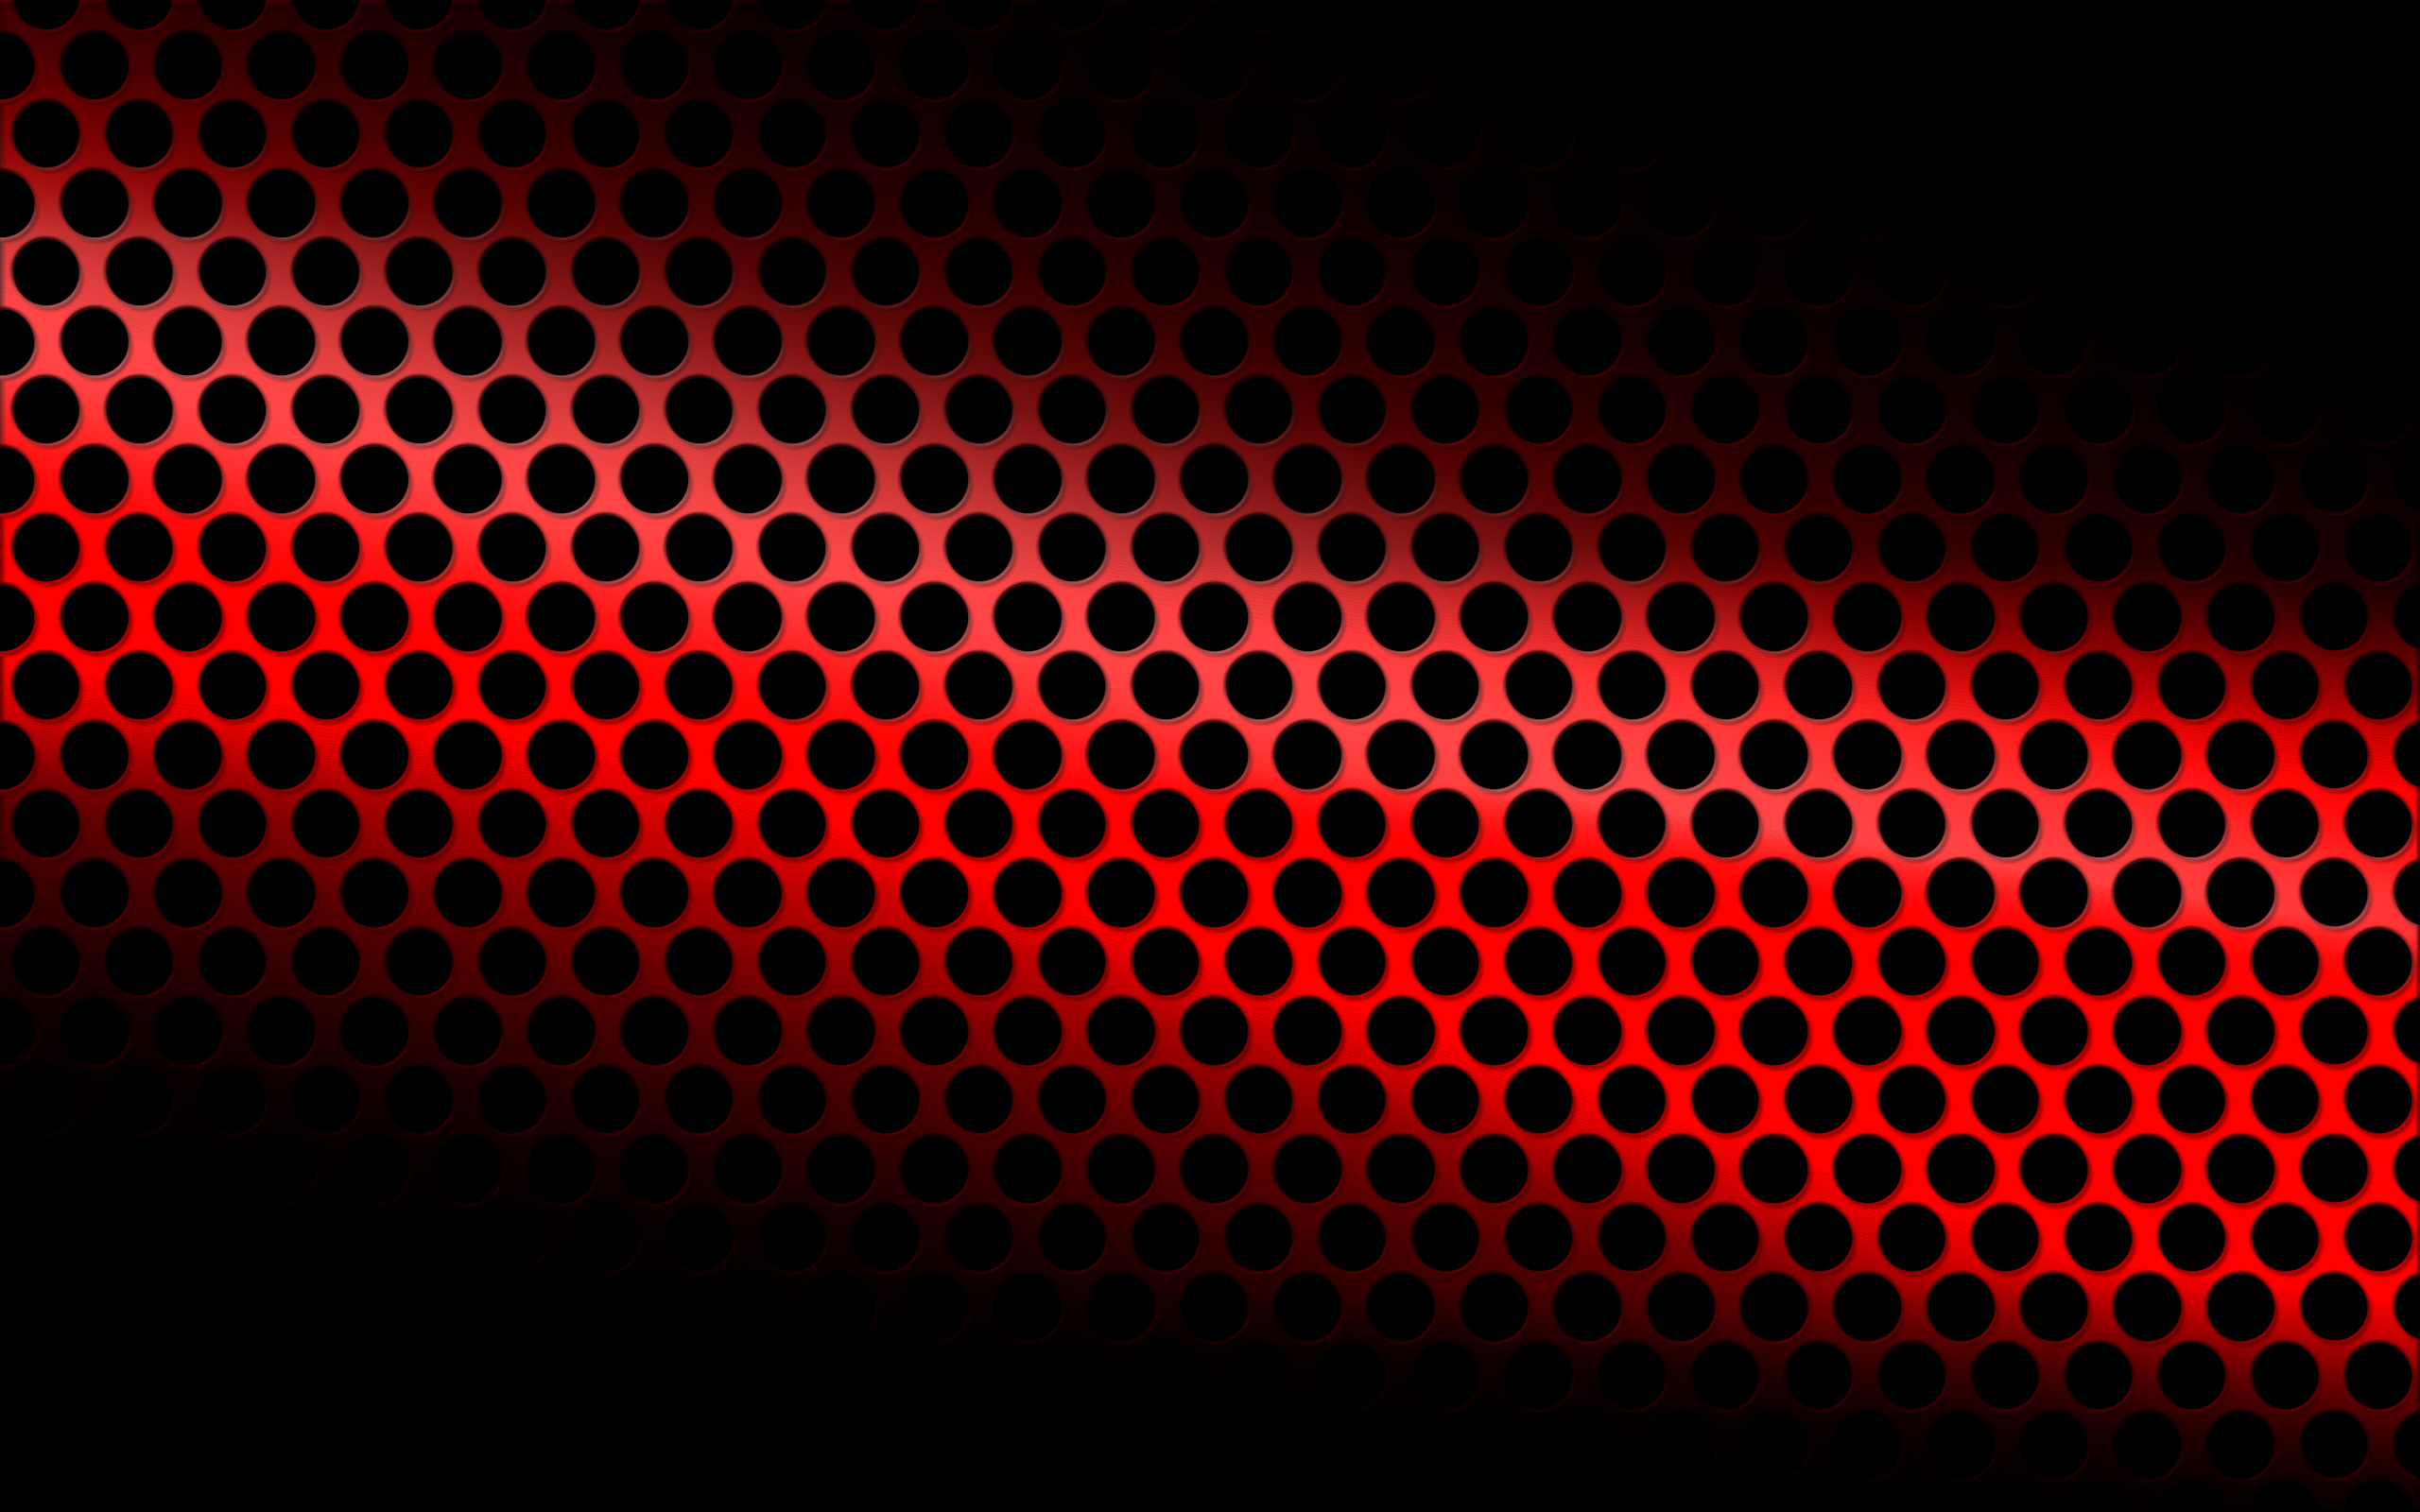 Iphone wallpaper black and red 8 widescreen wallpaper for Black red wallpaper